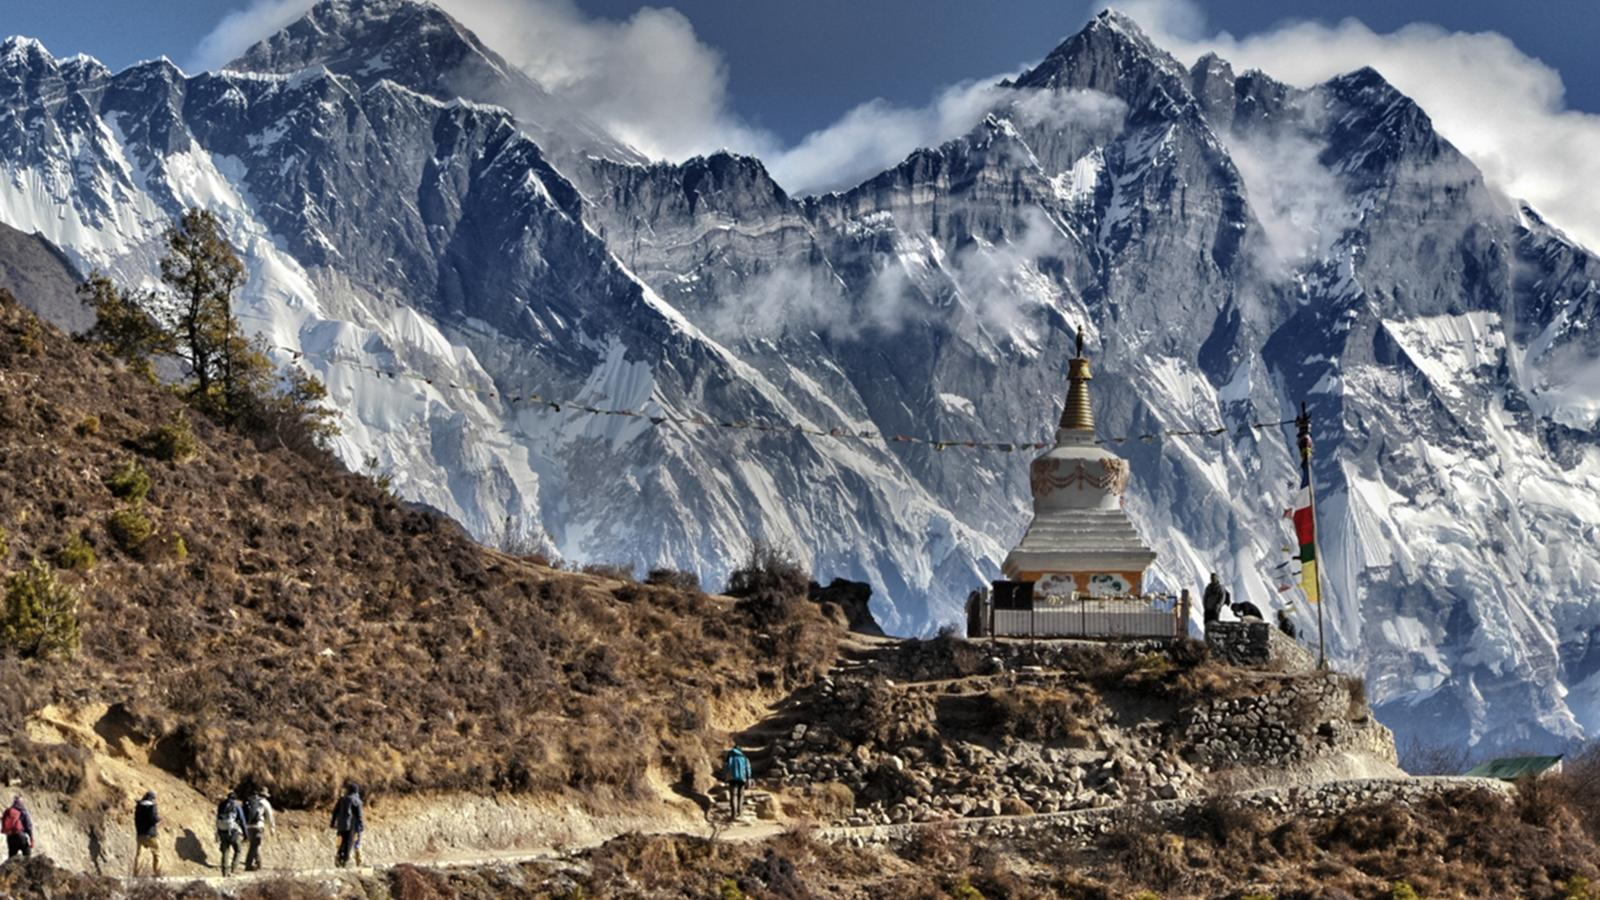 Annapurna Circuit, Nepal - Image courtesy of GA Adventures